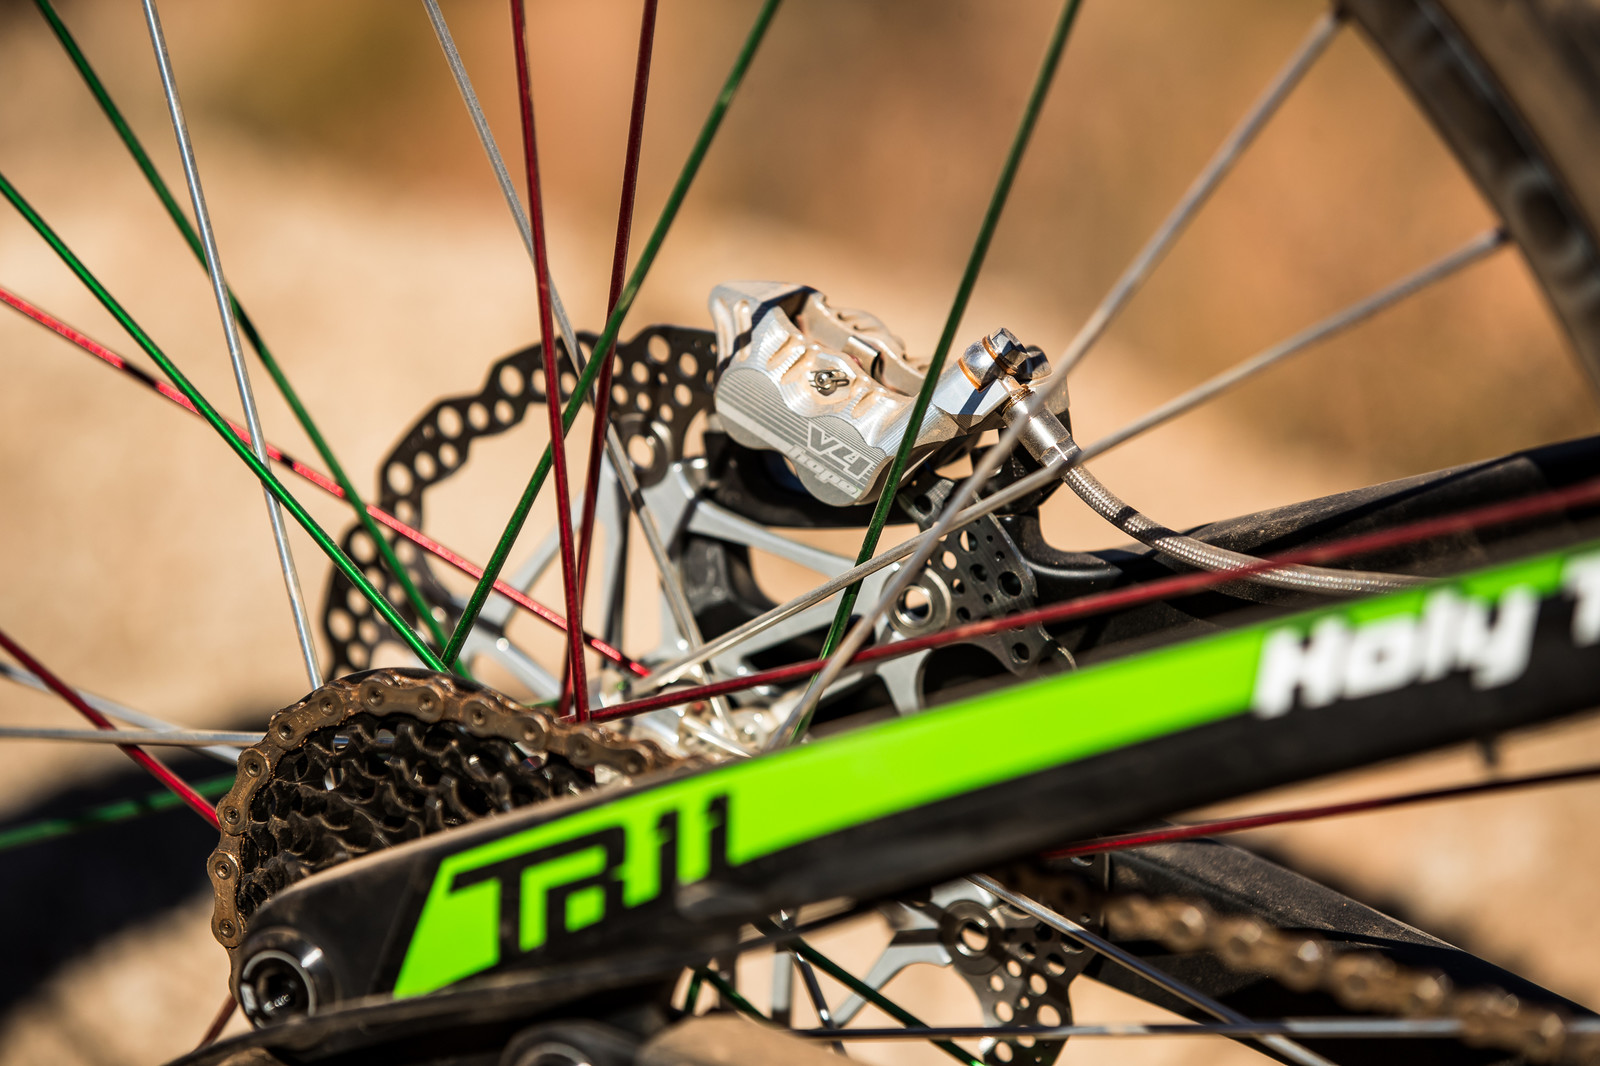 Hope Brakes on Juan Diego Salido's Transition TR11 at Rampage 2019 - RAMPAGE BIKE - Juan Diego Salido's Transition TR11 - Mountain Biking Pictures - Vital MTB